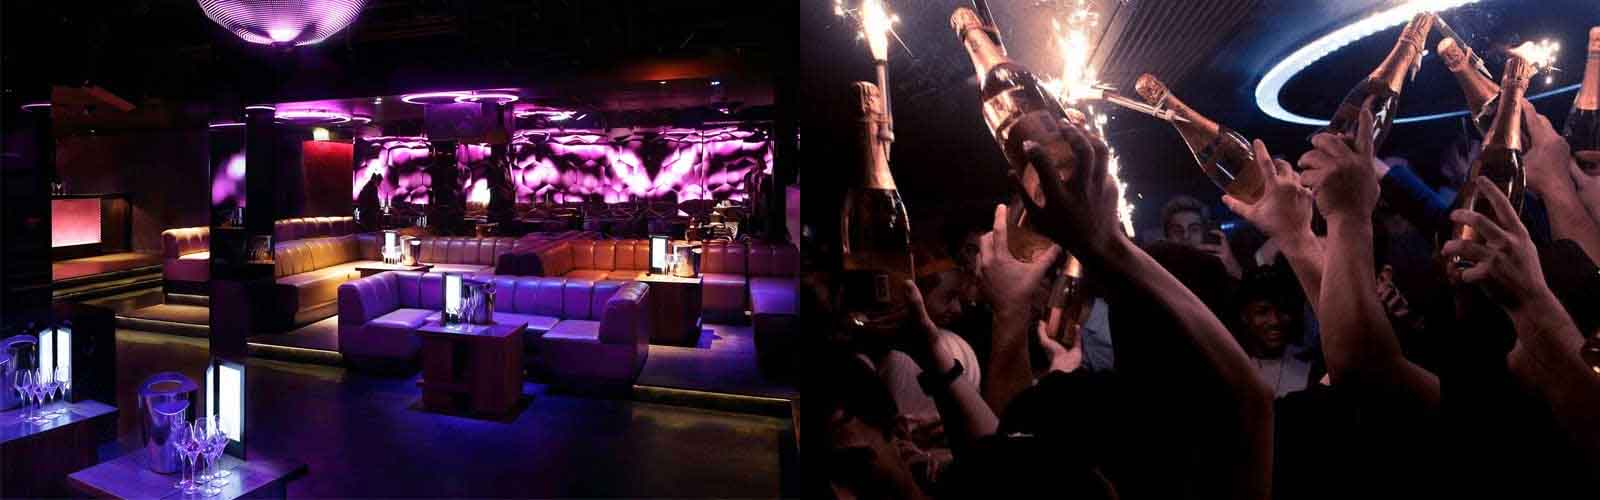 Libertine by Chinawhite is a fancy nightclub in London. Get free entry with a London Nightlife Ticket.